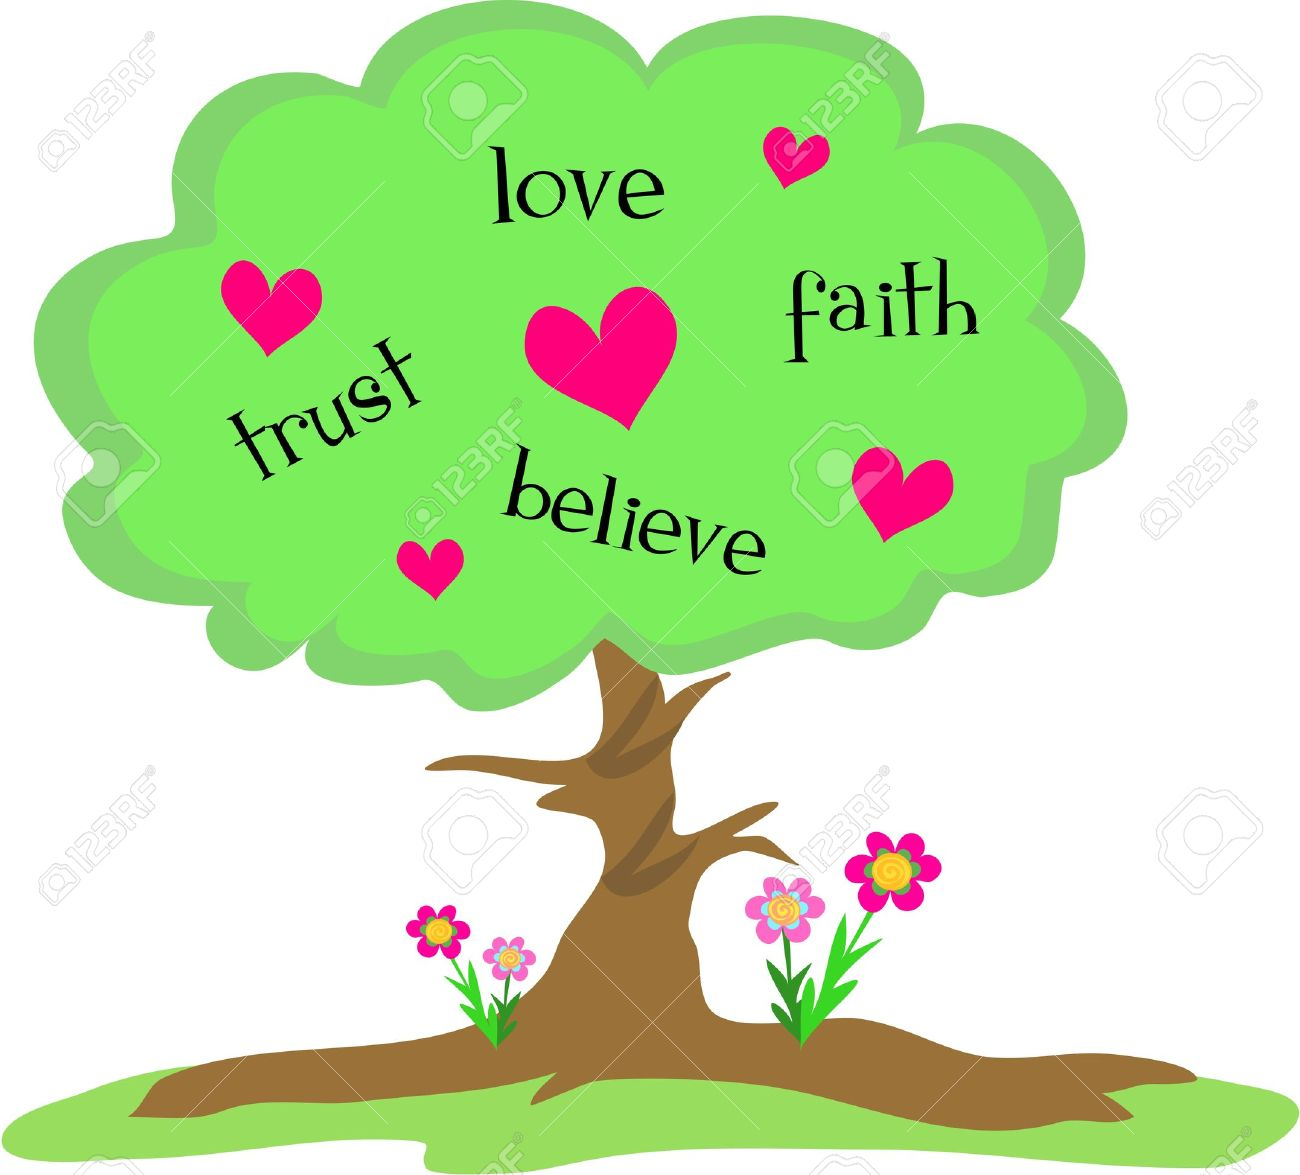 Love Tree With Hearts And Flowers Royalty Free Cliparts Vectors